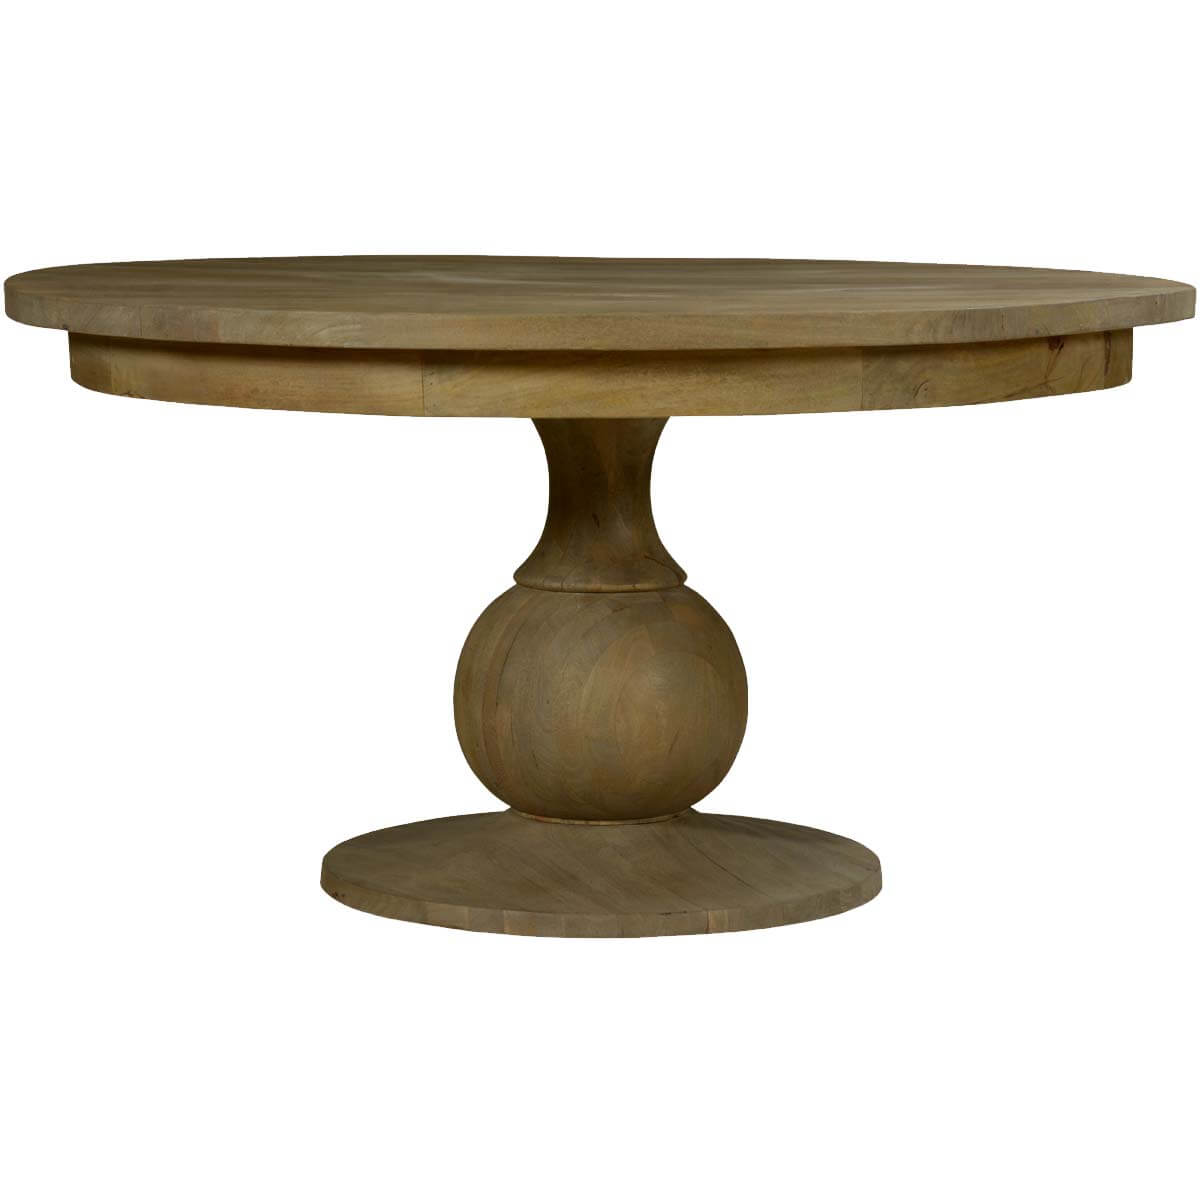 Smokey Tan Solid Mango Wood 60quot Round Pedestal Dining Table : 72134 from www.sierralivingconcepts.com size 1200 x 1200 jpeg 65kB